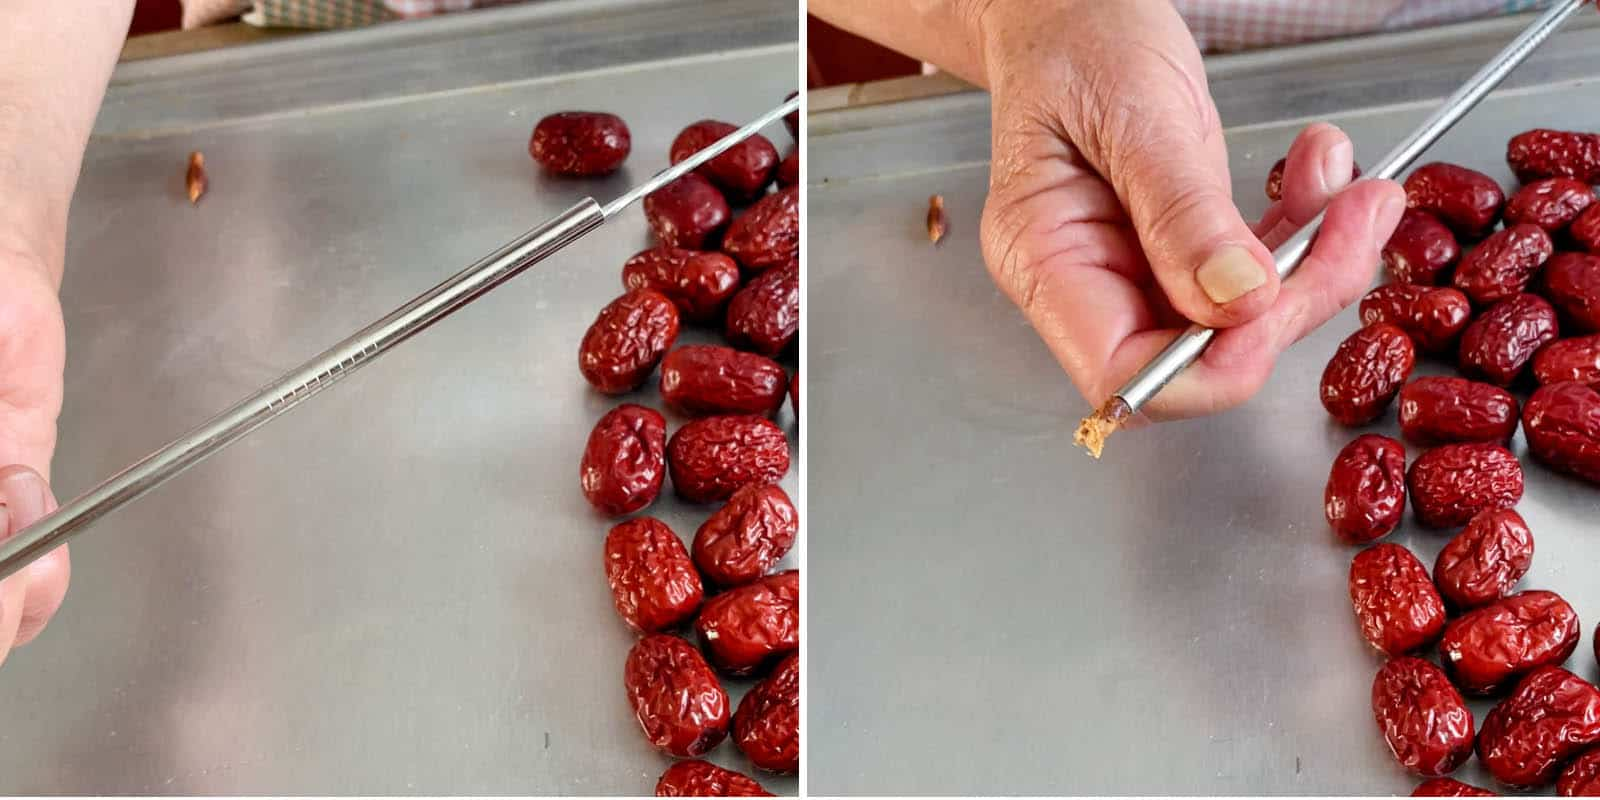 Using BBQ skewer to dislodge pits